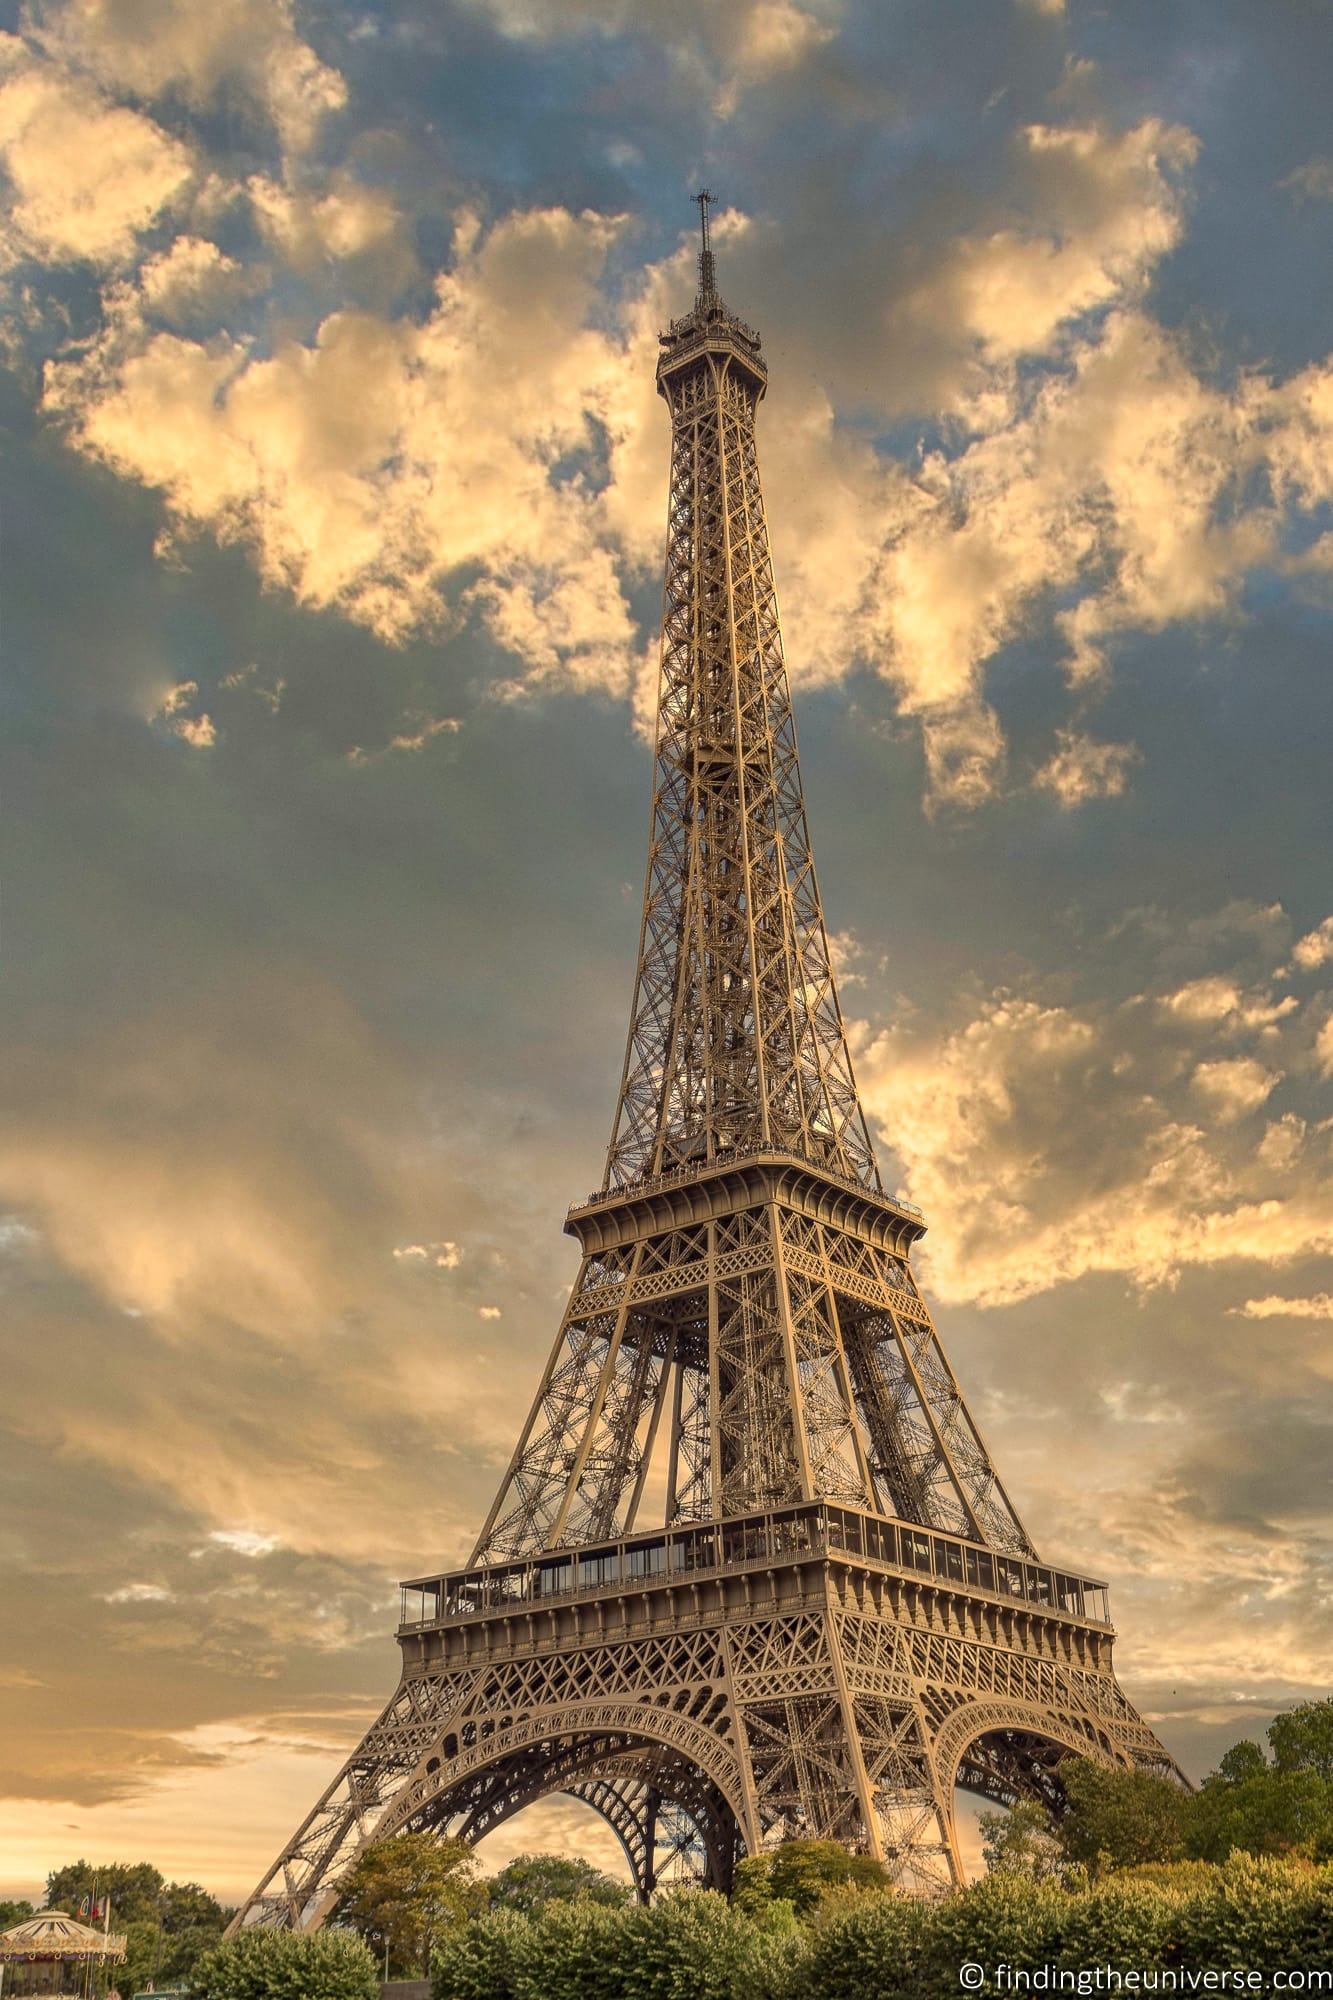 Eiffel Tower Sky replacement